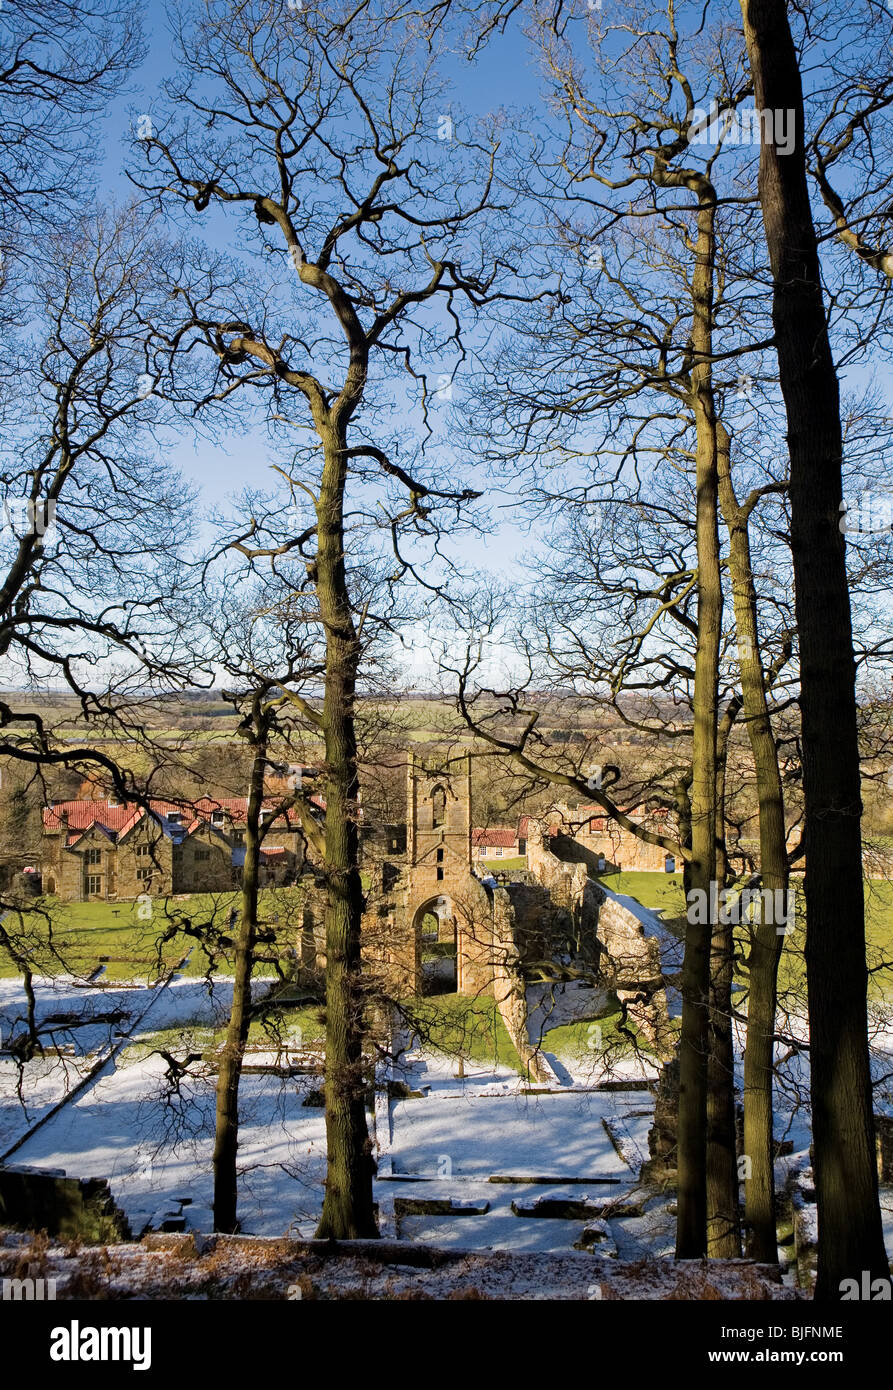 Mount Grace Priory, North Yorkshire, England Stock Photo